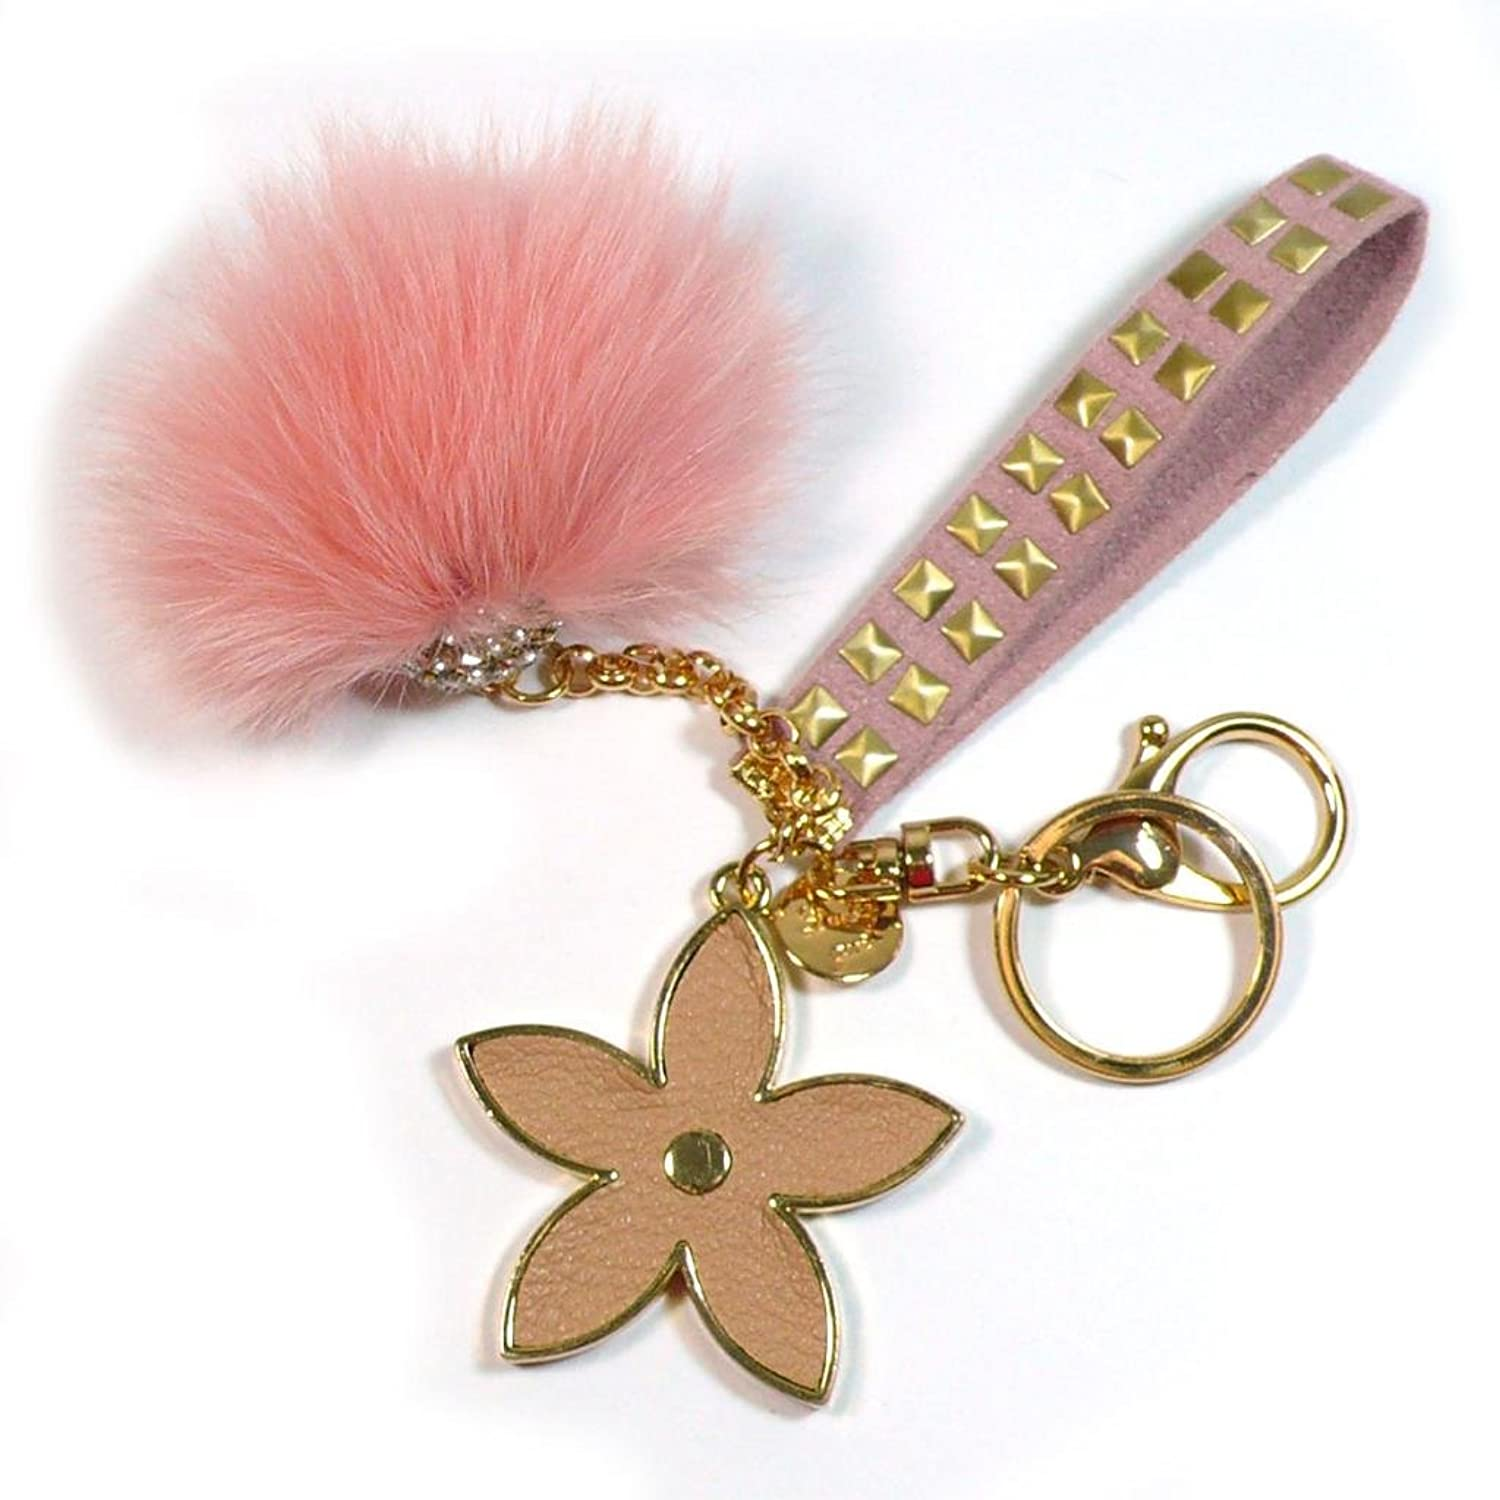 Teri's Boutique Soft Stylish Fur Ball With Flower Gold Purse Charm Key Chain Pink